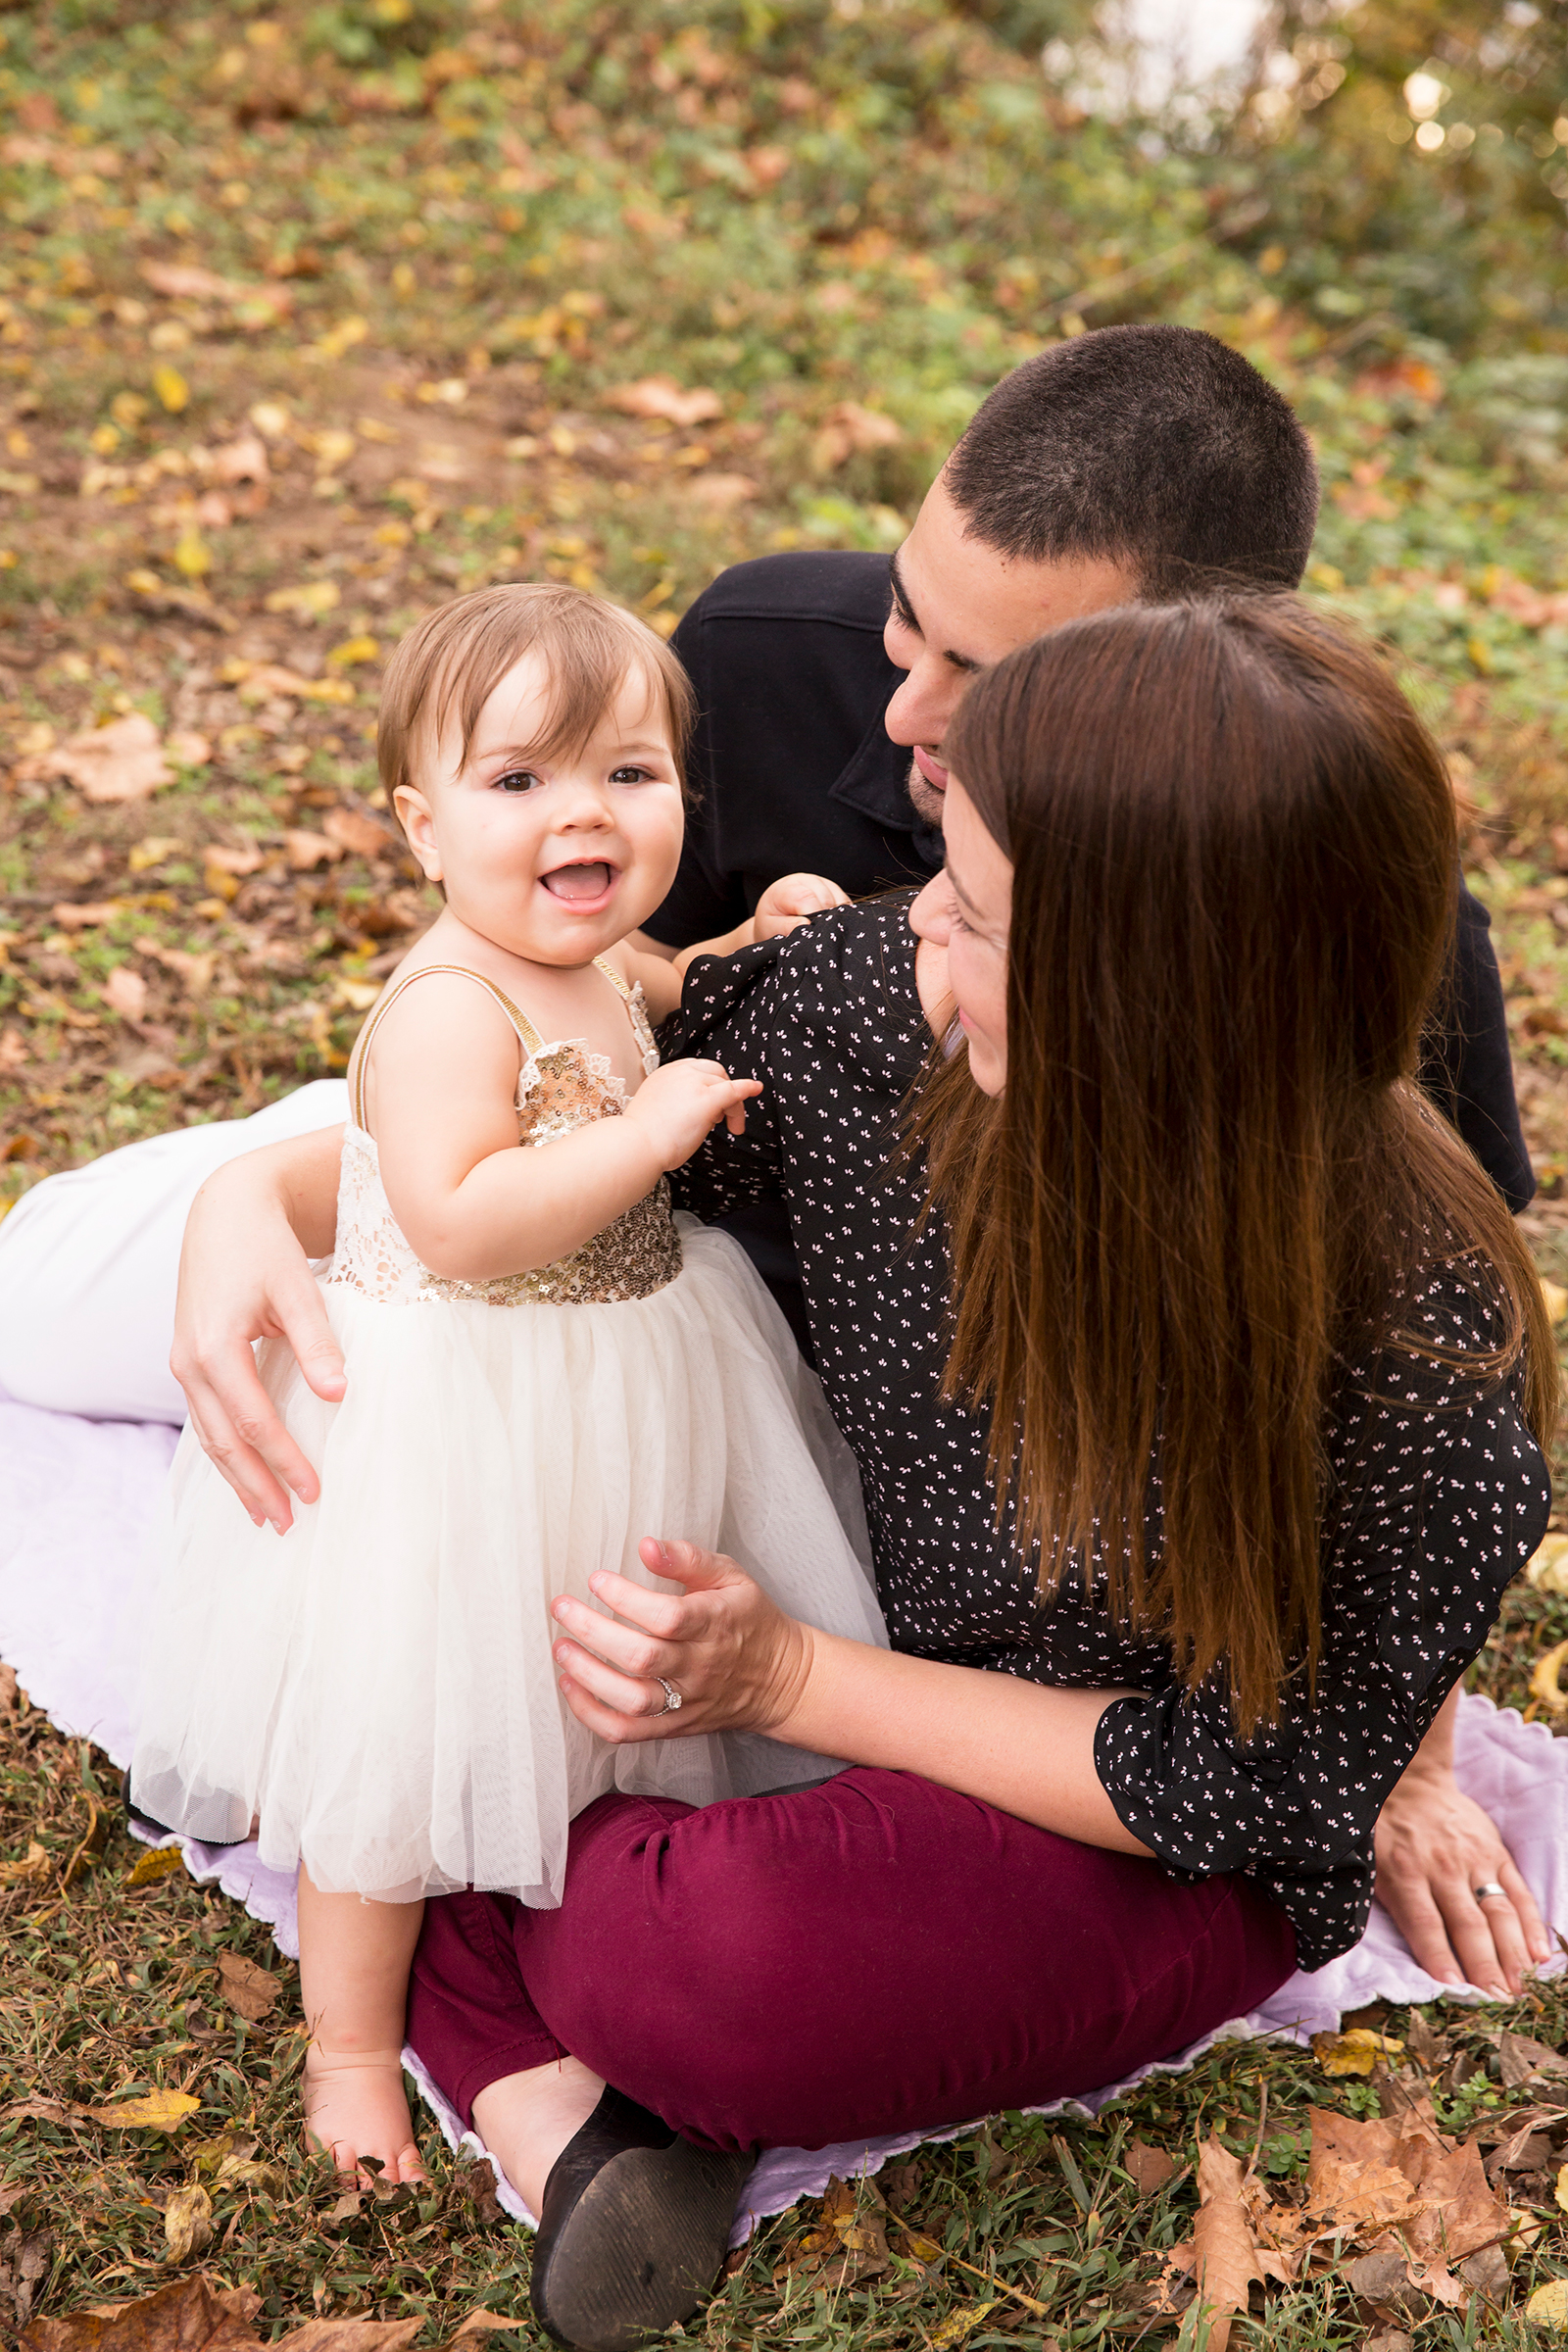 One Year Old Birthday Shoot in Powhatan Virginia  - Image Property of www.j-dphoto.com